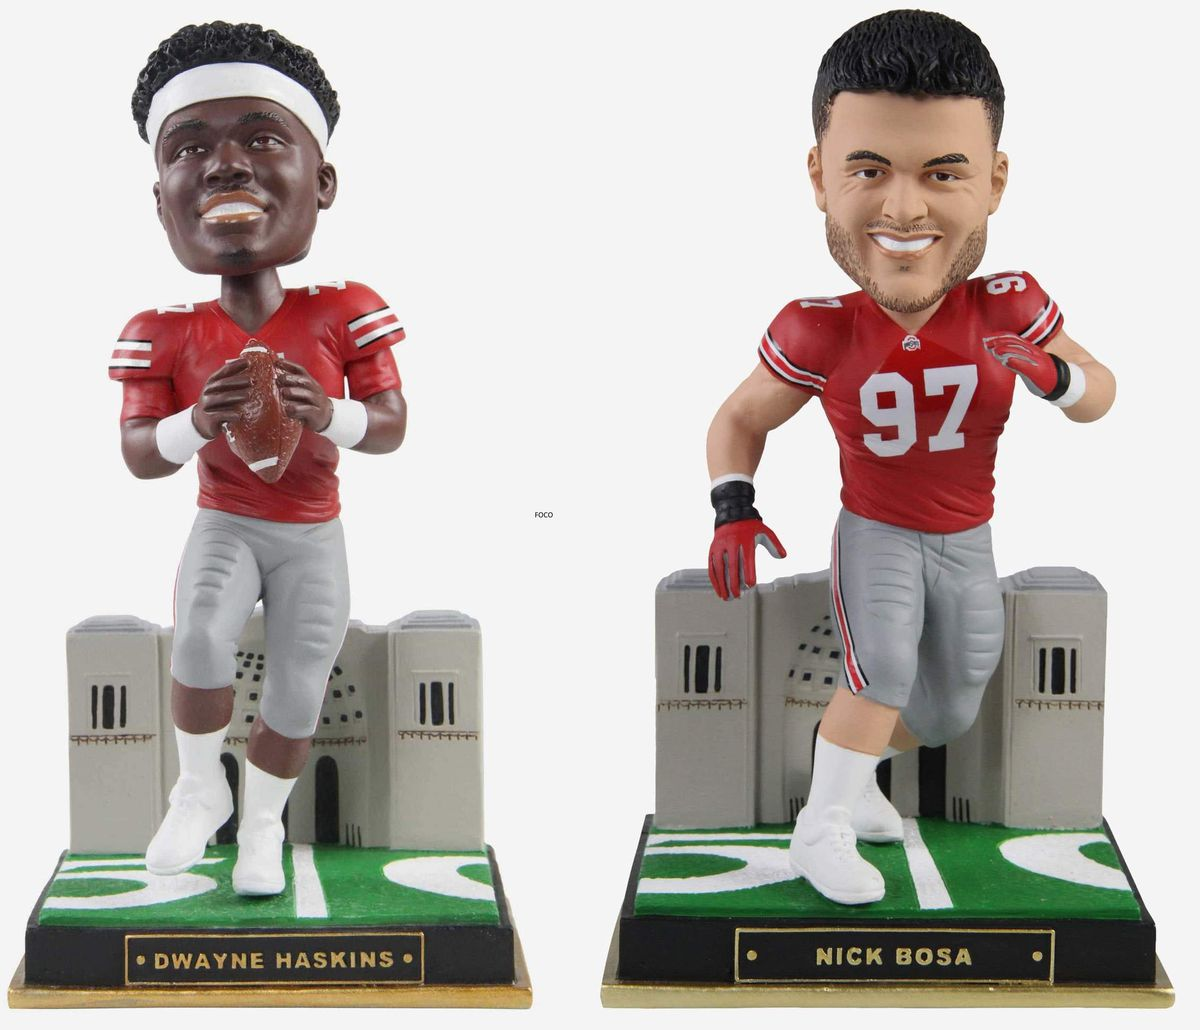 Dwayne Haskins, Nick Bosa Gates Series bobbleheads released by FOCO